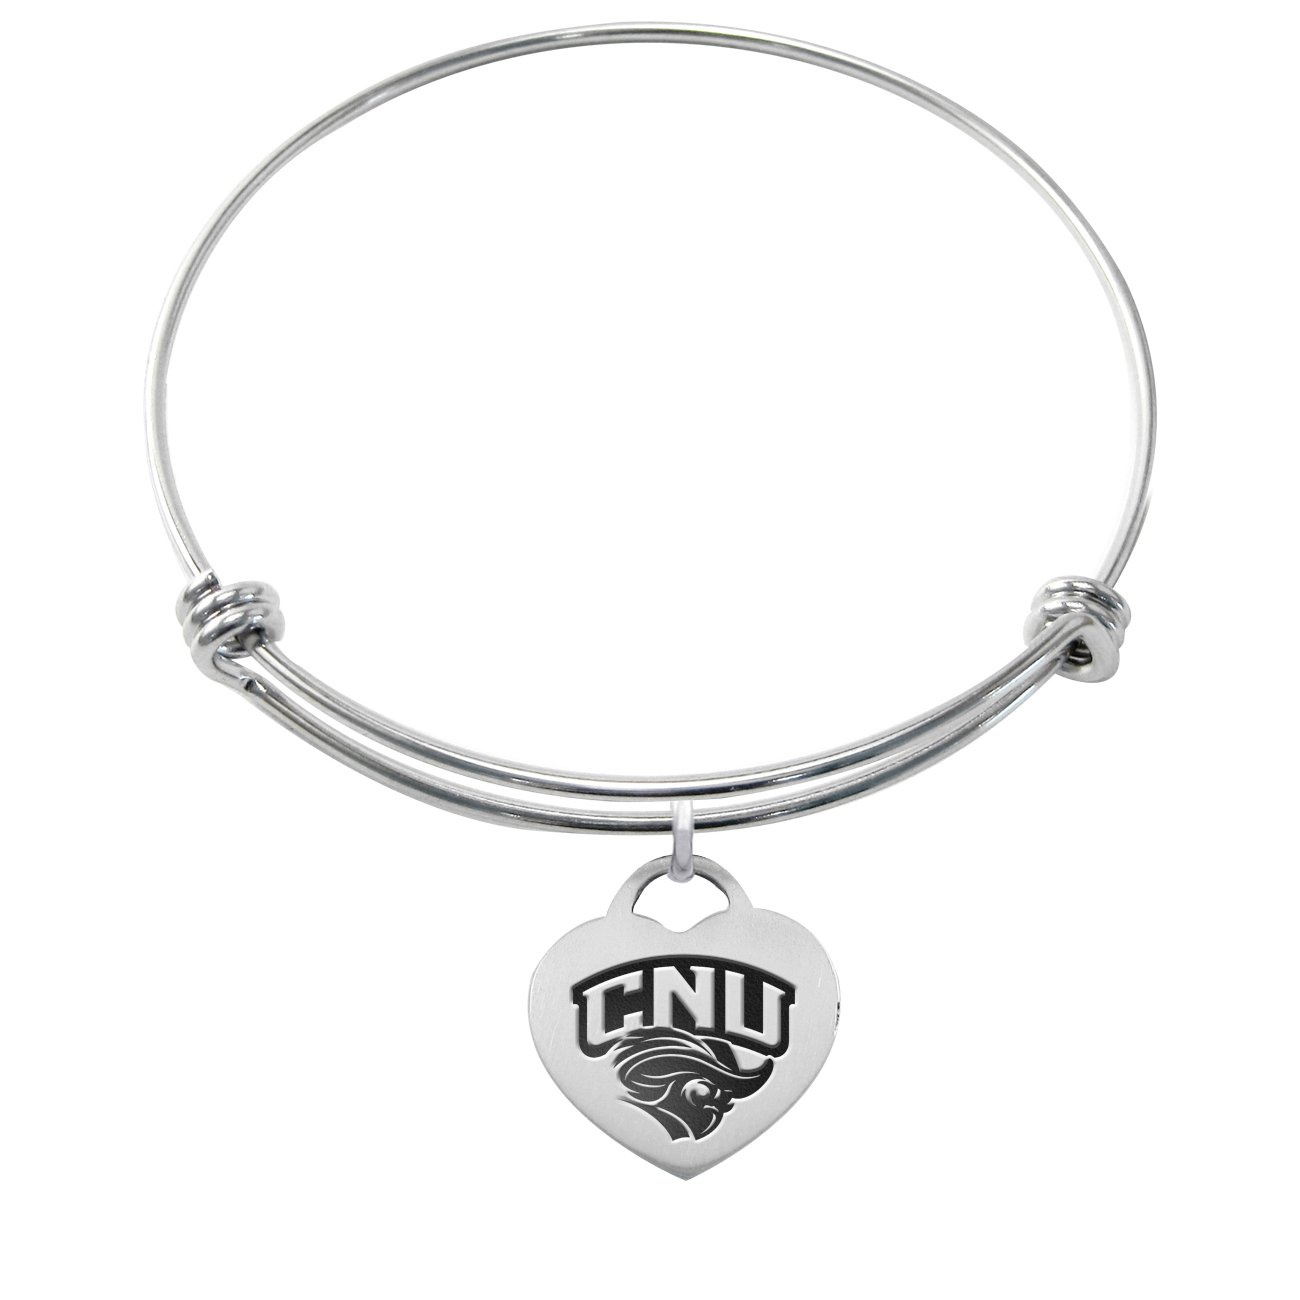 Christopher Newport Captains Stainless Steel Adjustable Bangle Bracelet with Heart Charm